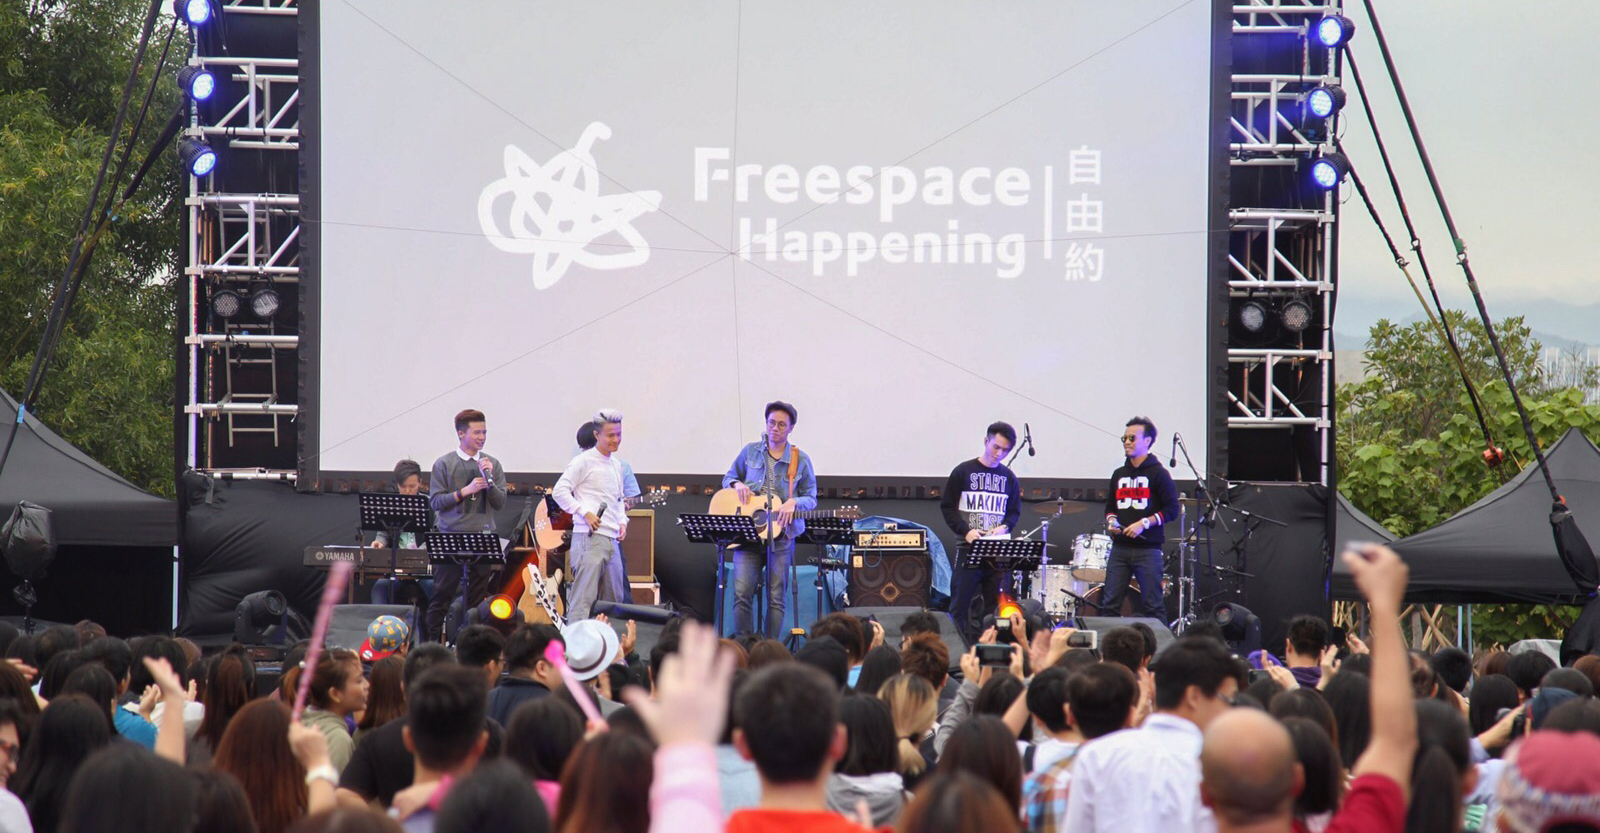 Freespace West Kowloon